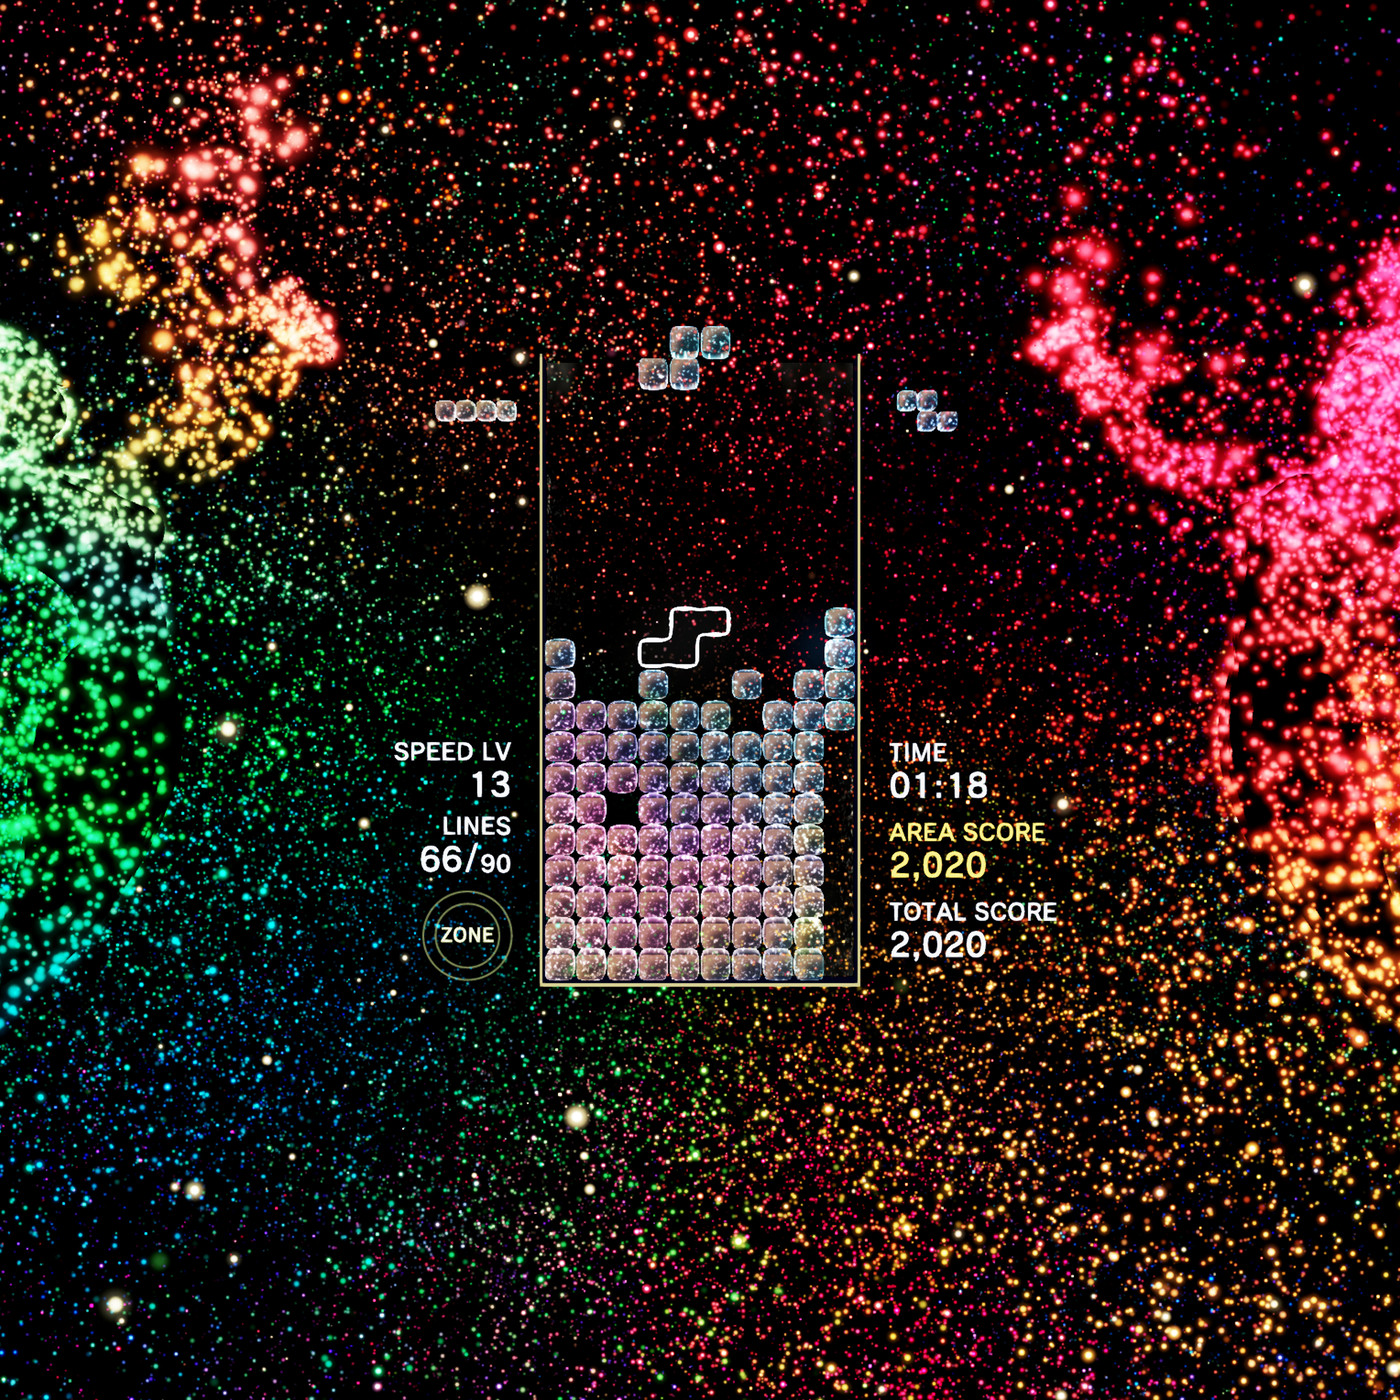 Tetris Effect remains transcendent on PC - The Verge